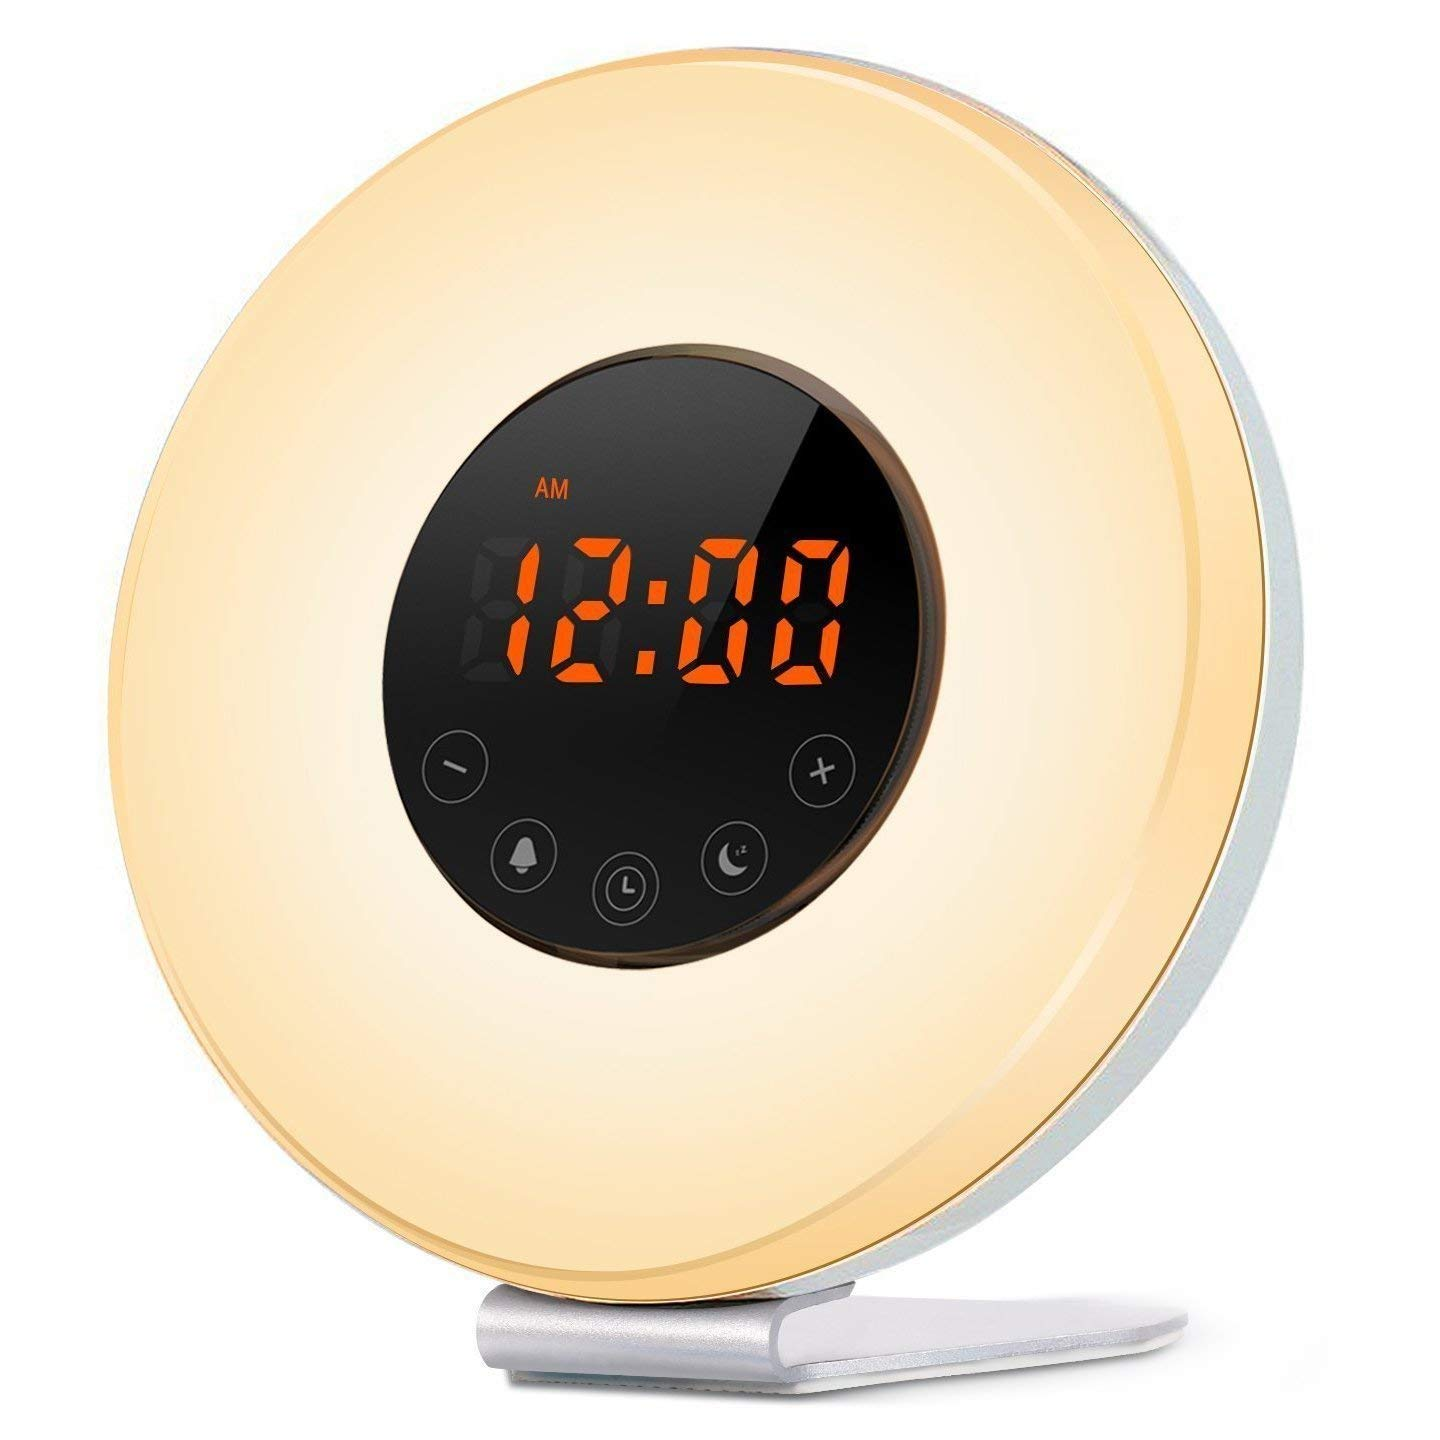 HONXEE L6 Wake up Light Alarm Clock Atmosphere Lamp with Sunrise and Sunset Simulation, 10 Brightness, Snooze Function, FM Radio, 7 Colors Moods Lights Changing for Bedroom, Living Room, Nursery (L6) product image